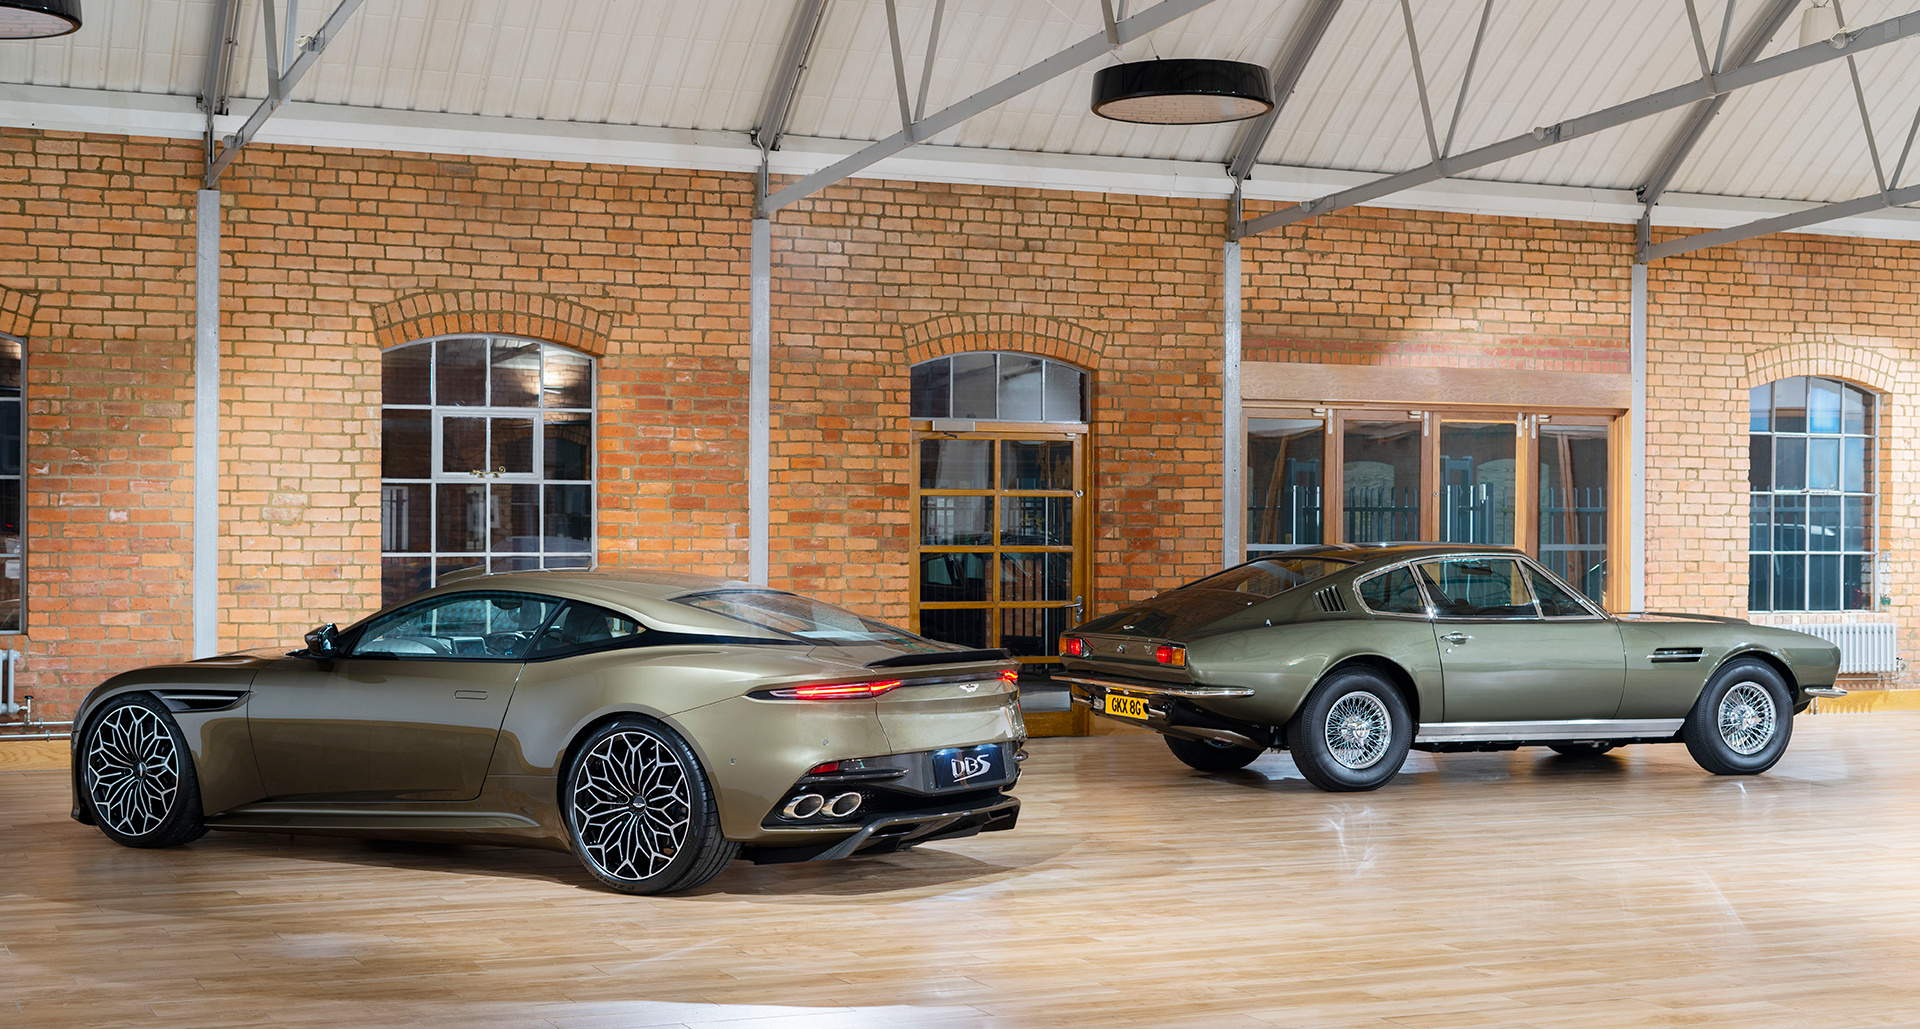 Aston Martin DBS Superleggera Edition James Bond 007 On Her Majesty's Secret Service